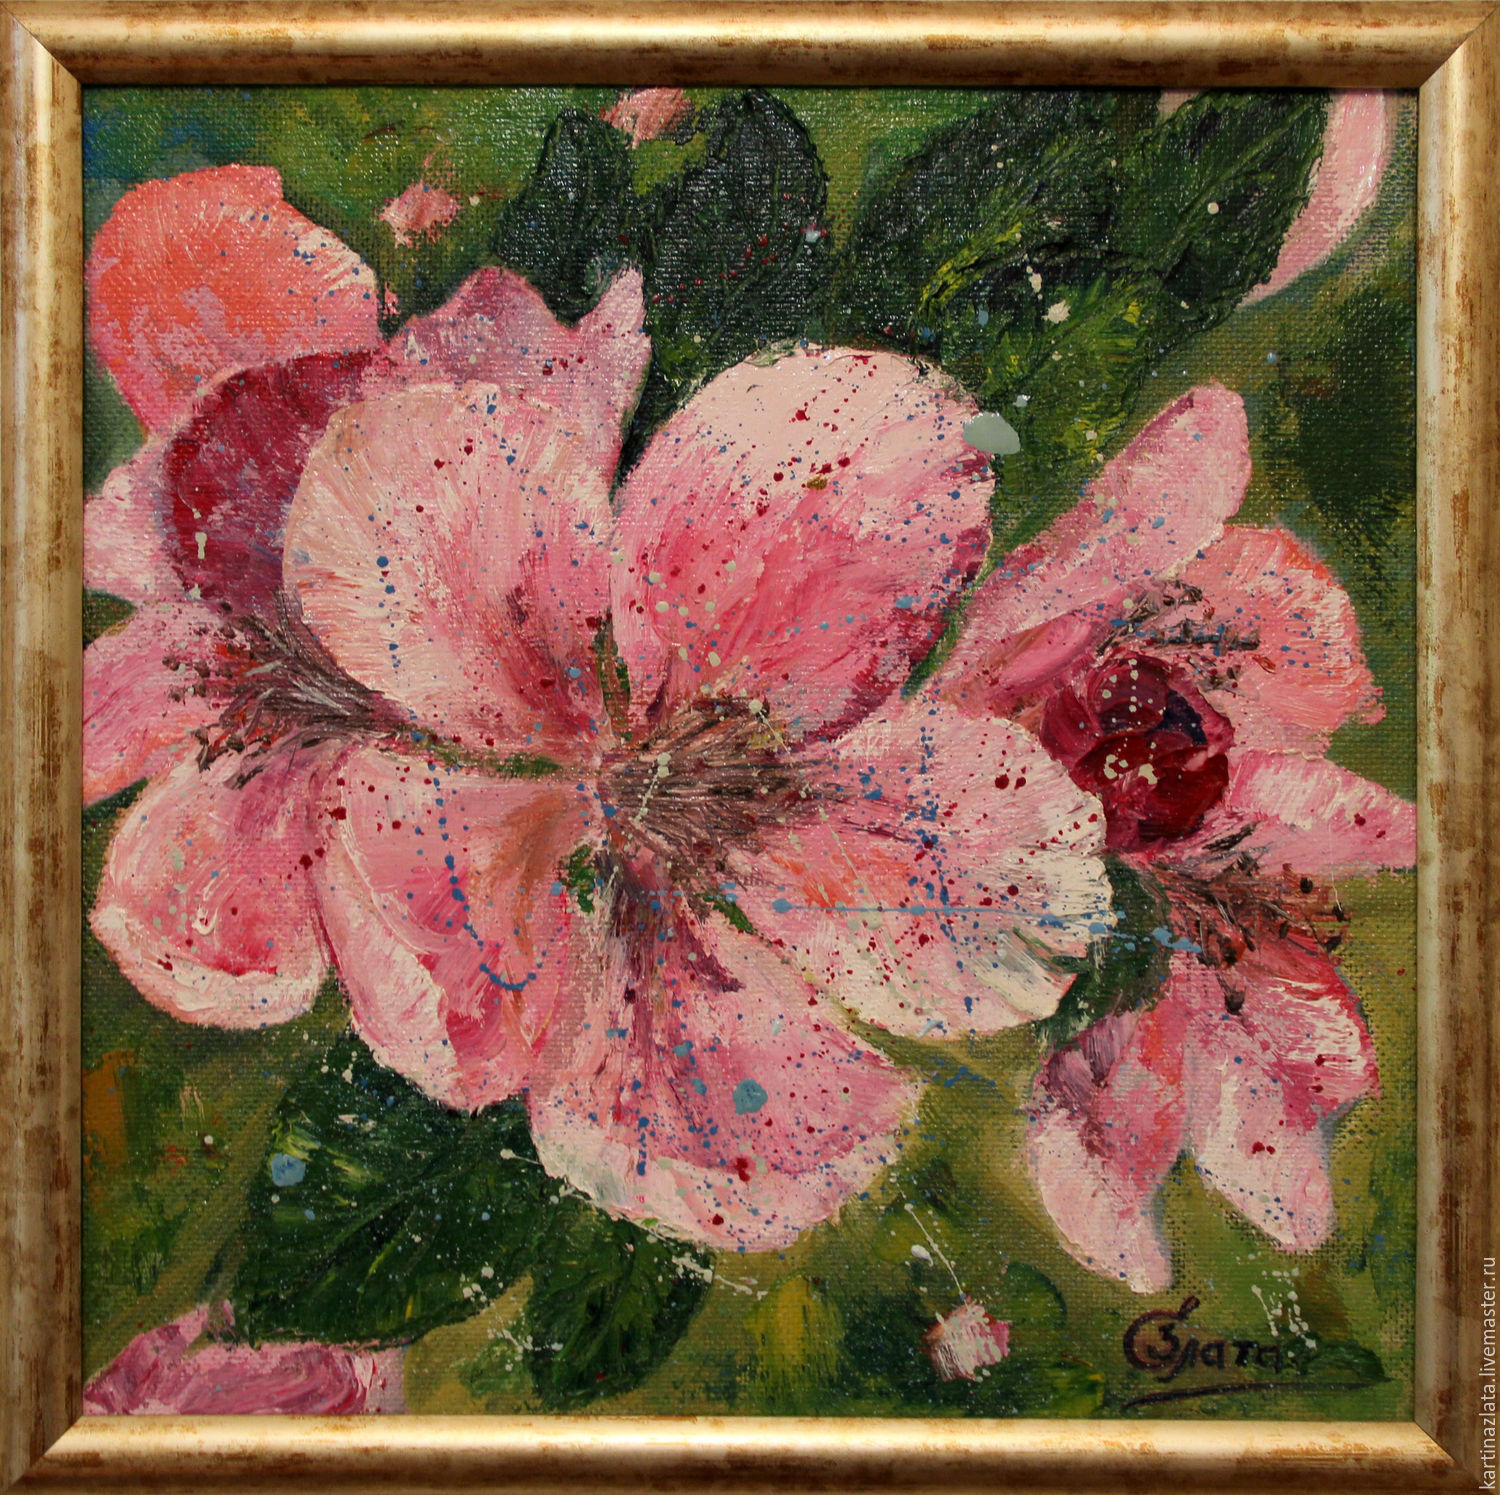 Oil painting cherry blossoms Prize collections – shop online on